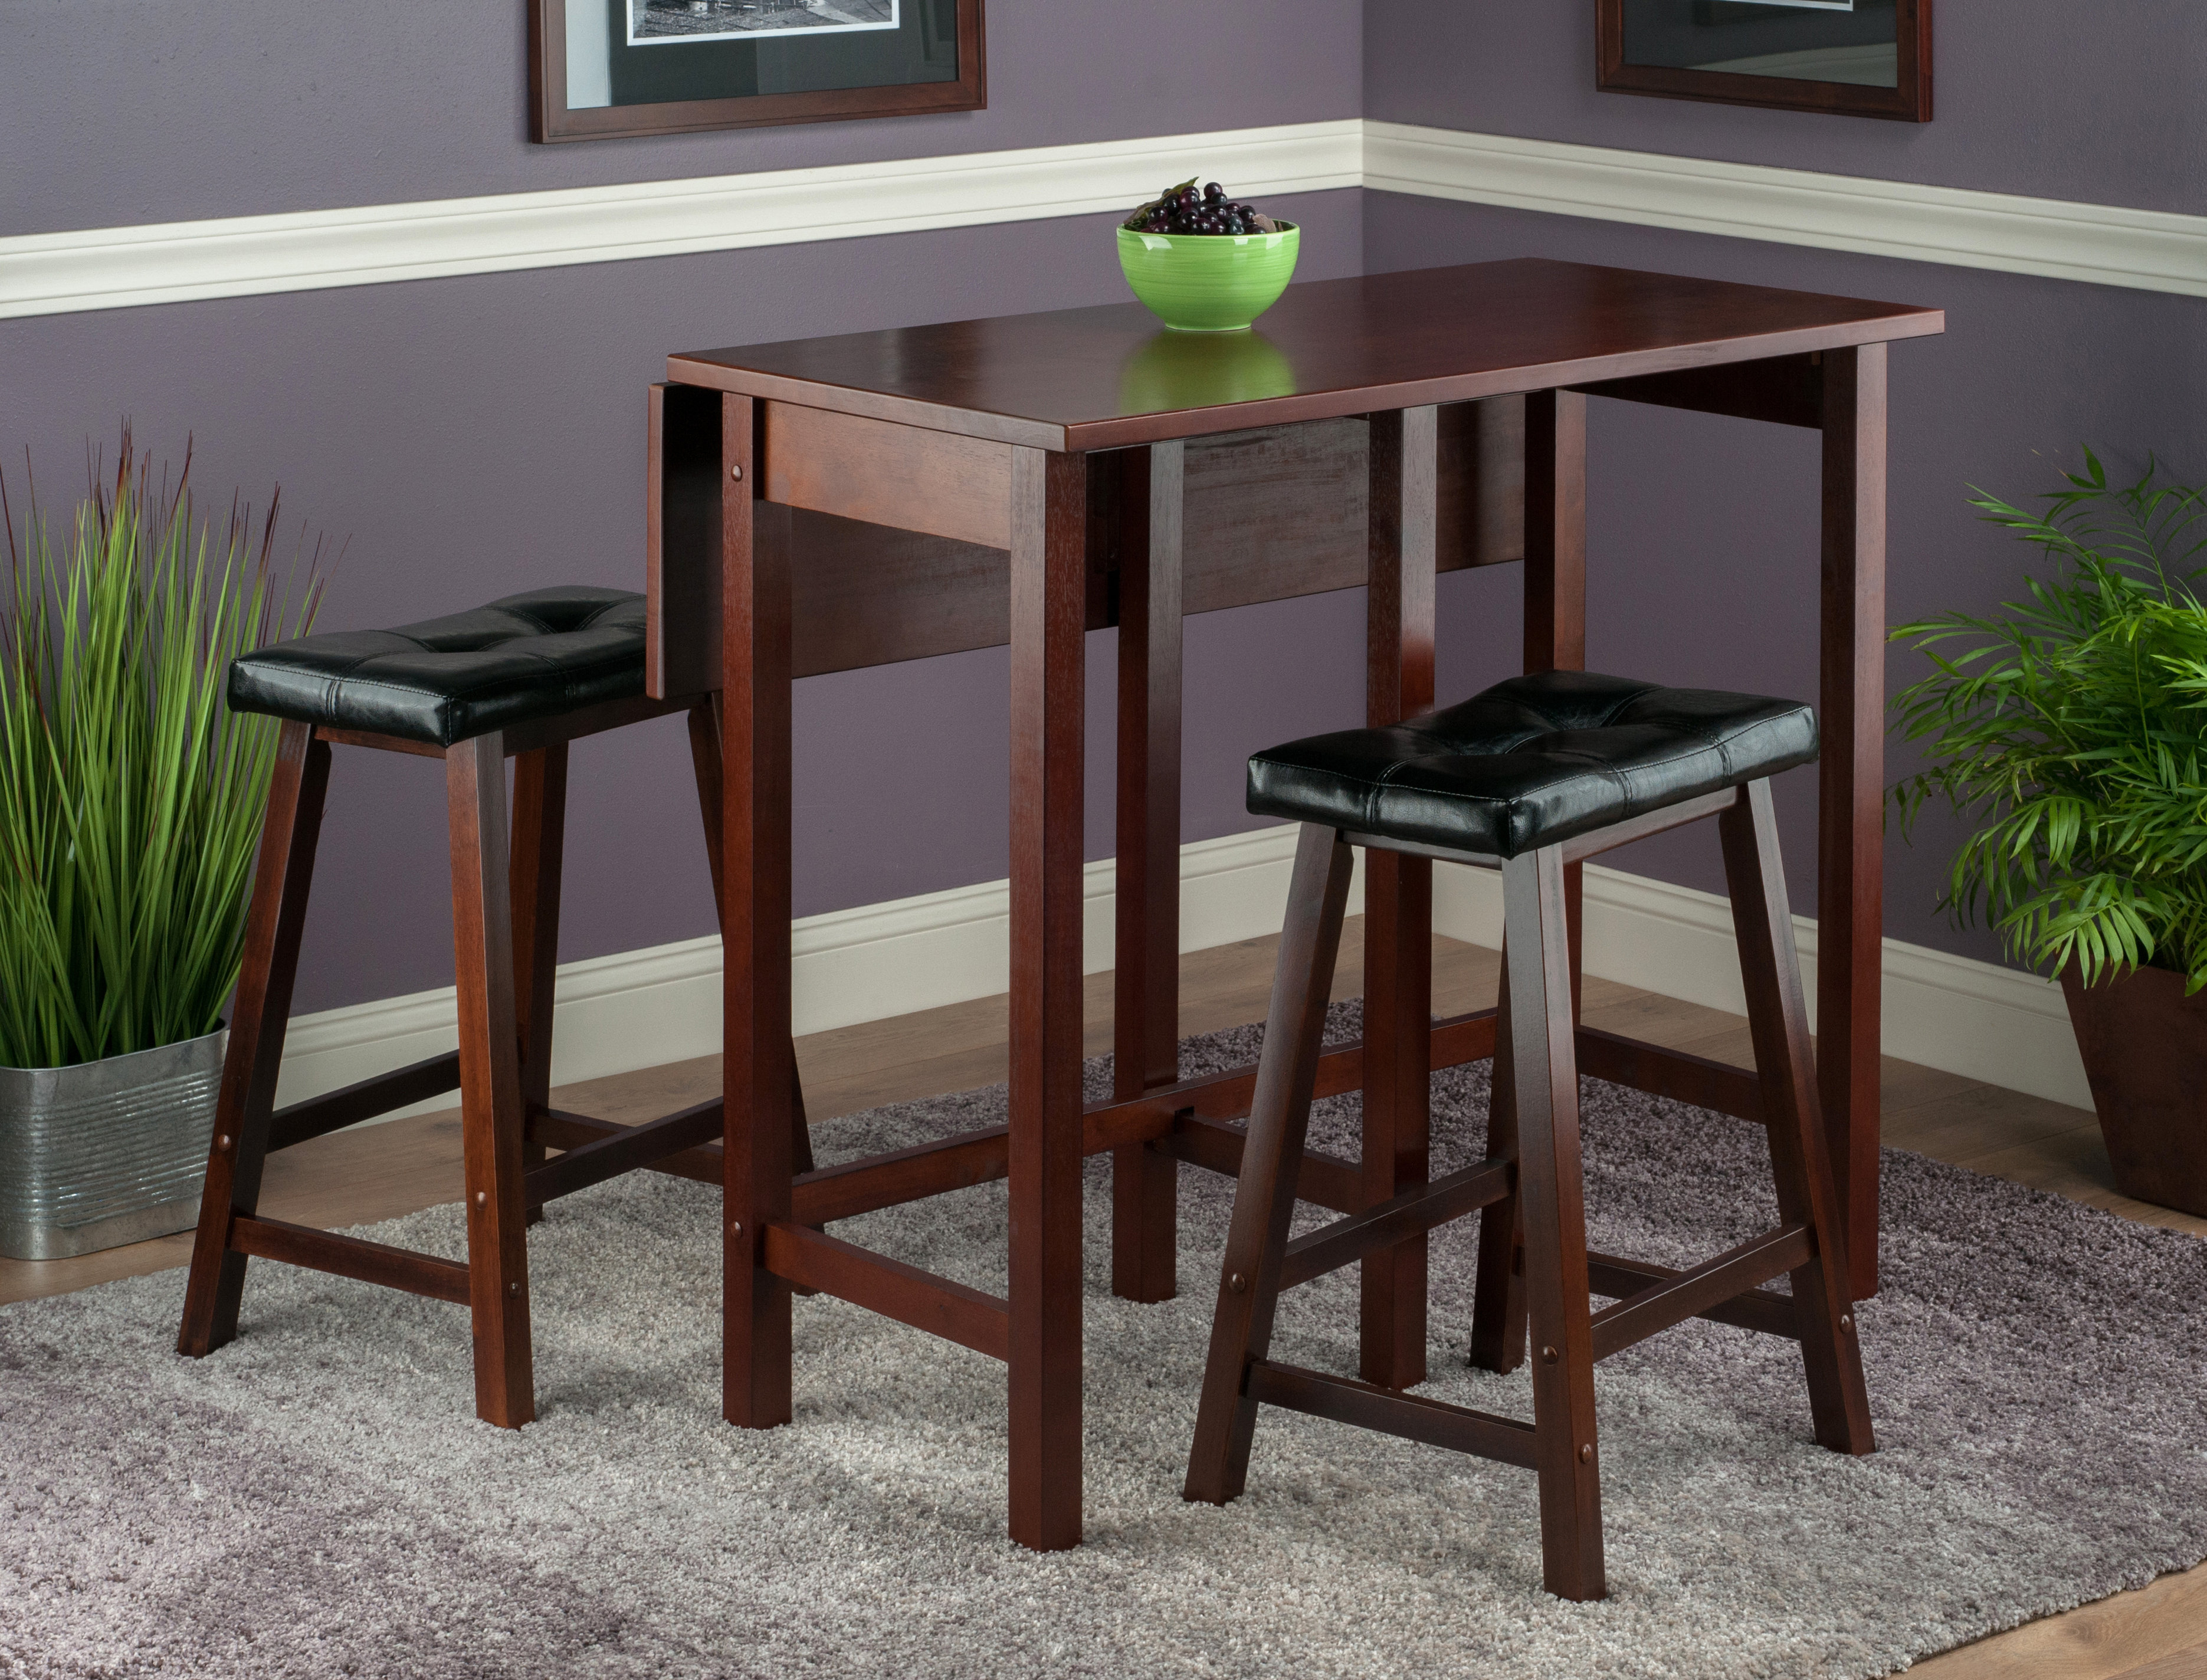 Bettencourt 3 Piece Counter Height Dining Set Throughout Most Up To Date Lonon 3 Piece Dining Sets (View 9 of 20)